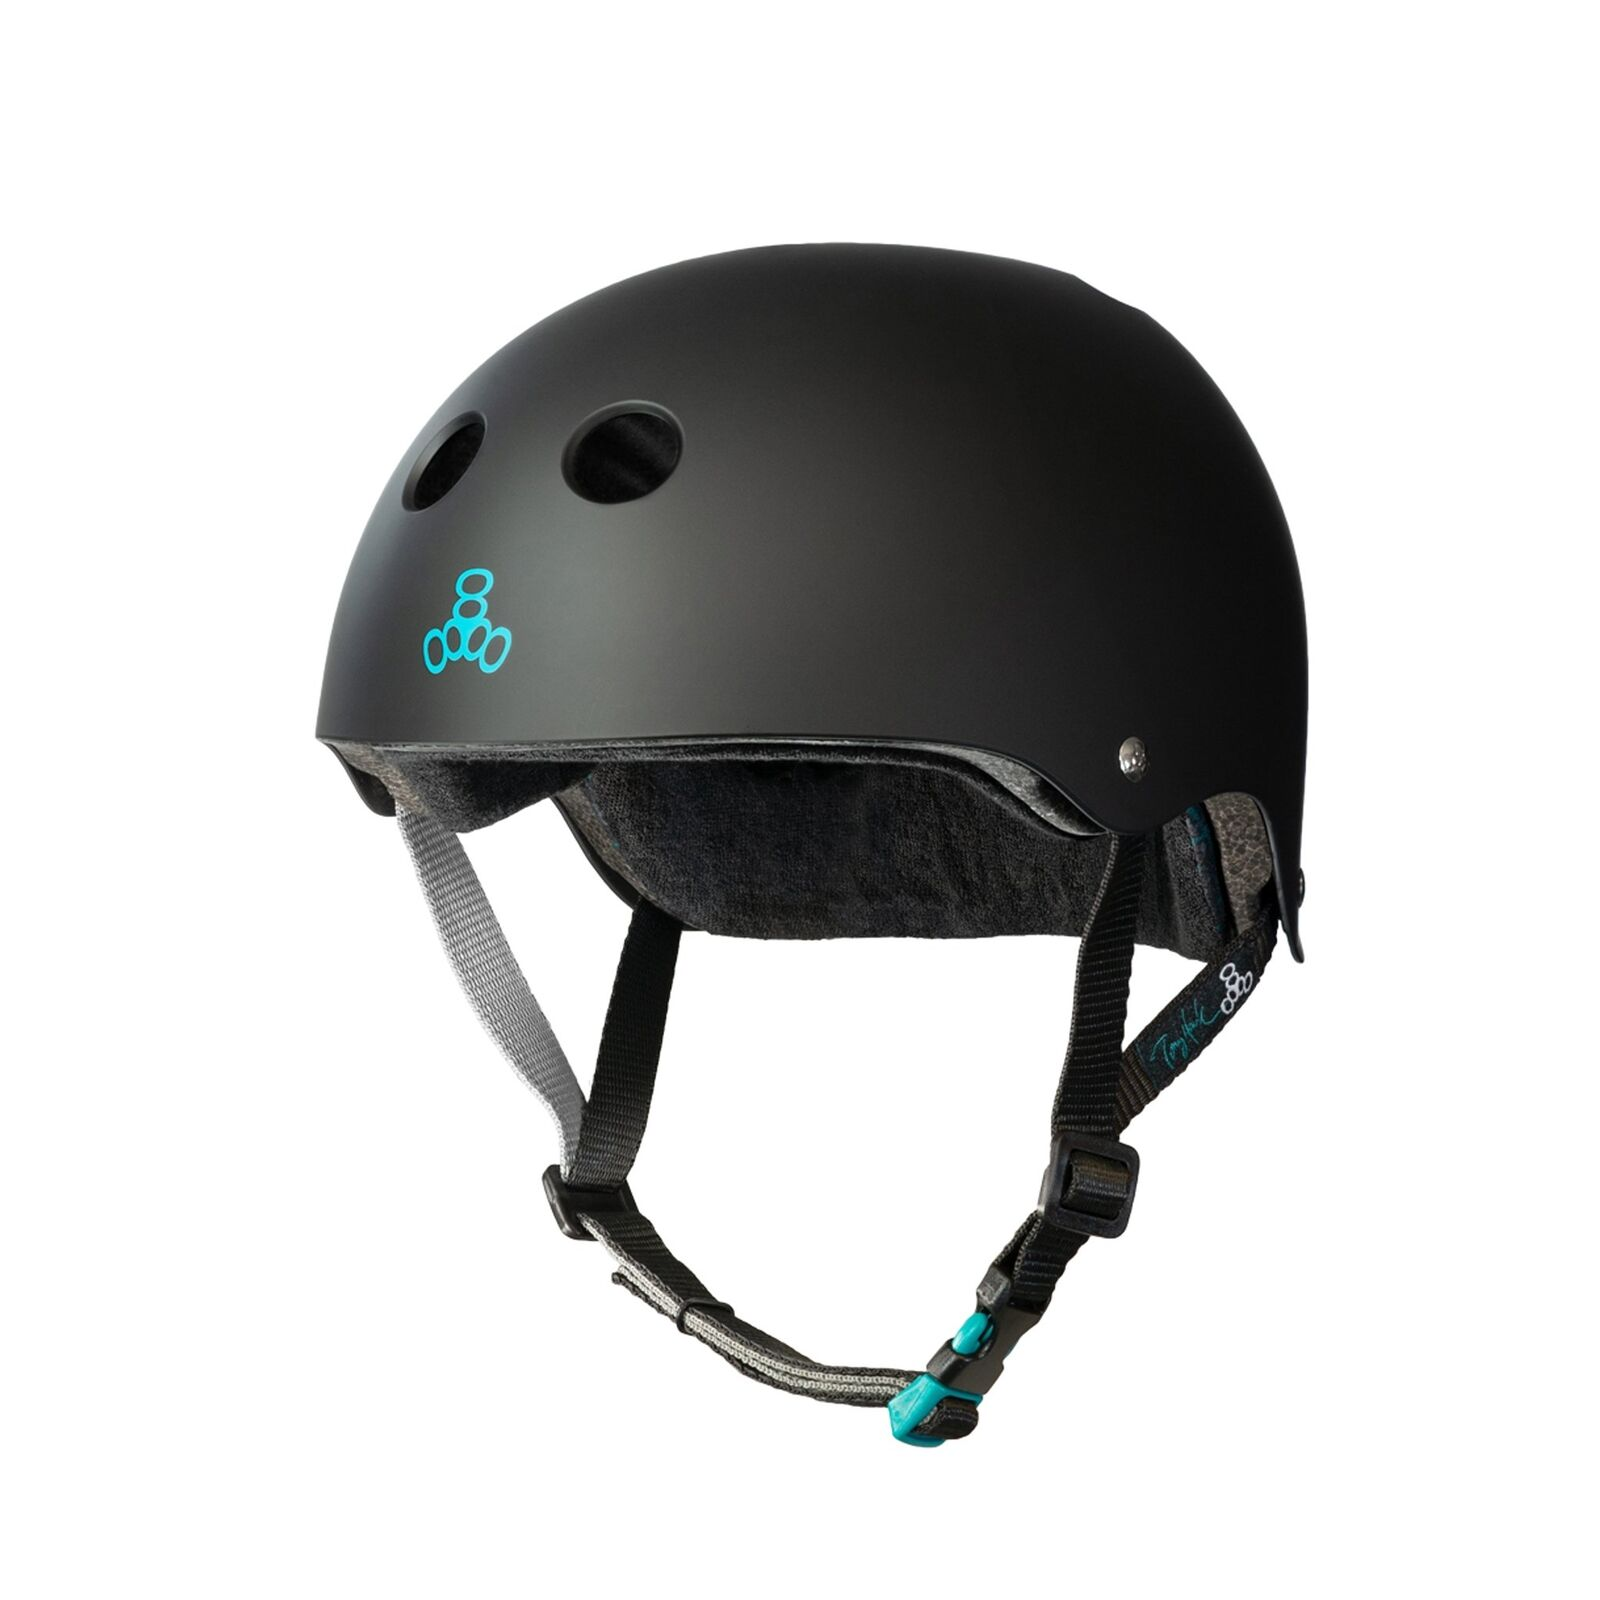 TRIPLE 8 CERTIFIED SWEATSAVER HELMET  TONY HAWK  for your style of play at the cheapest prices